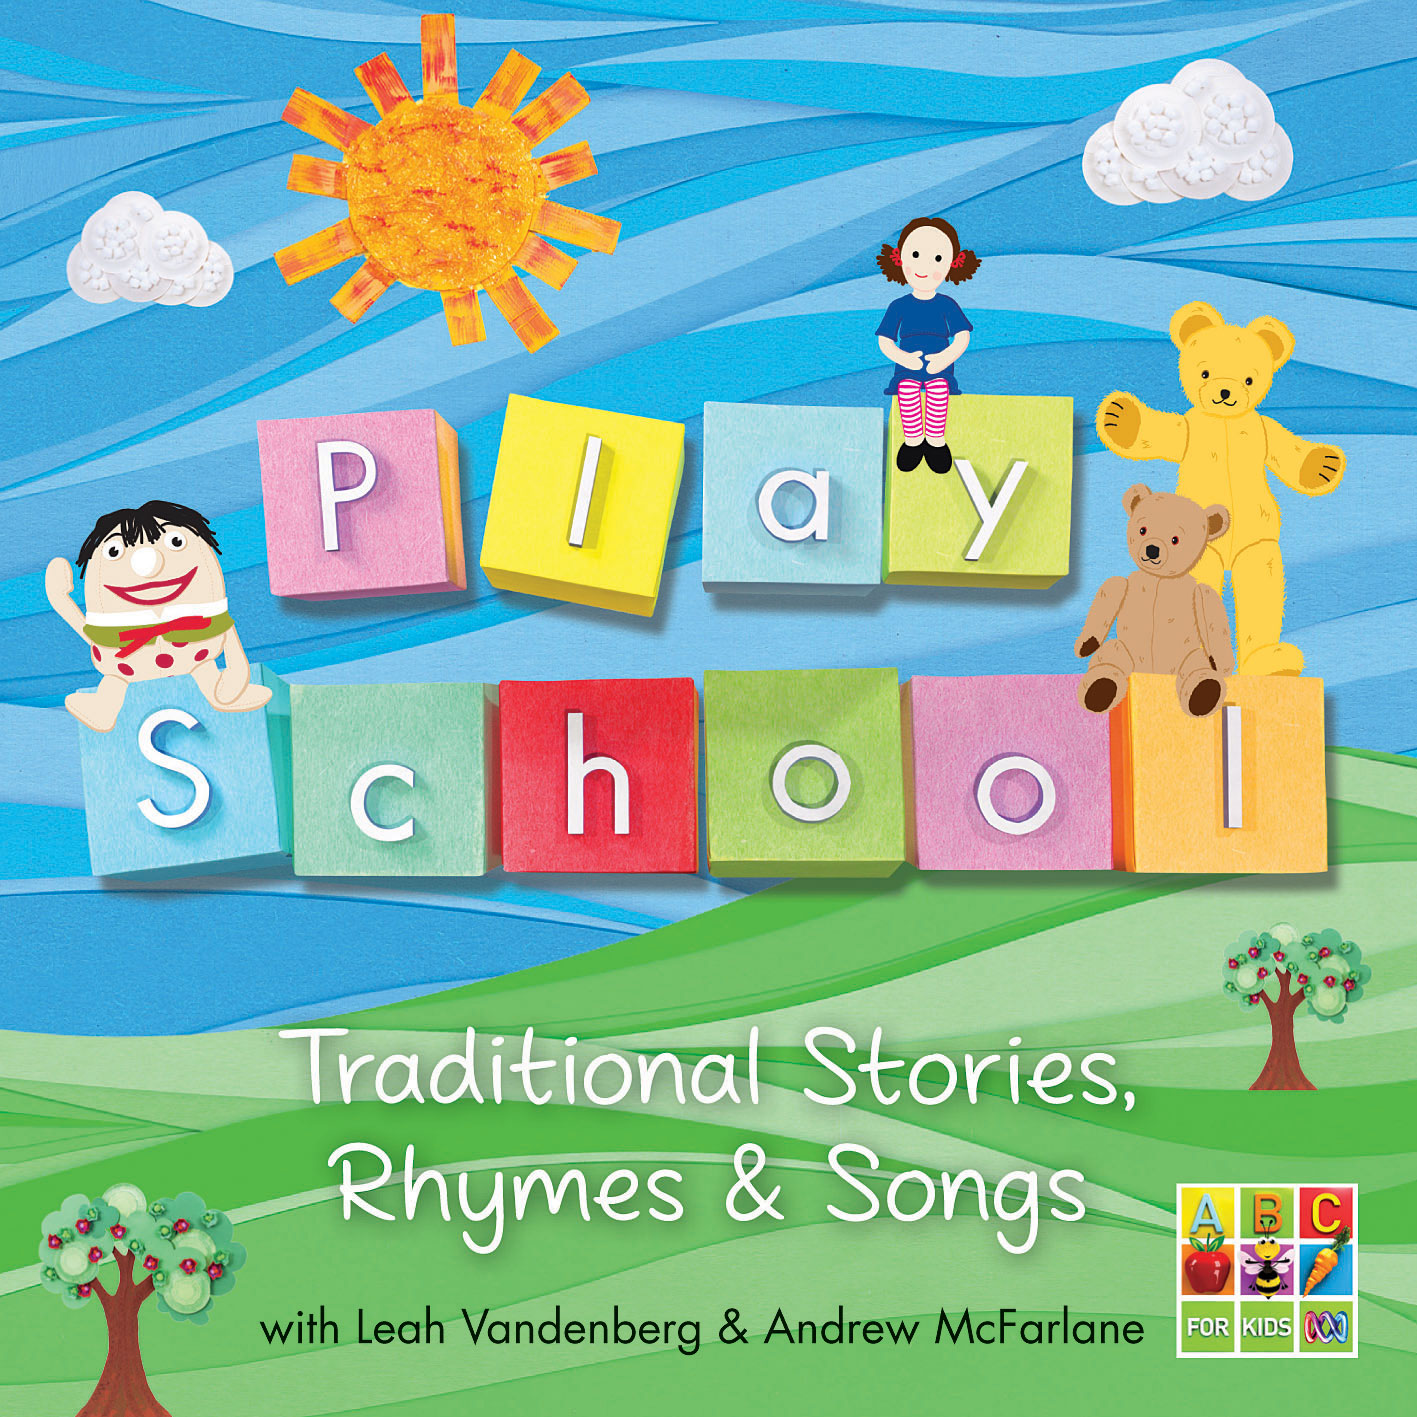 ABC Music | Traditional Stories, Rhymes & Songs from Play School